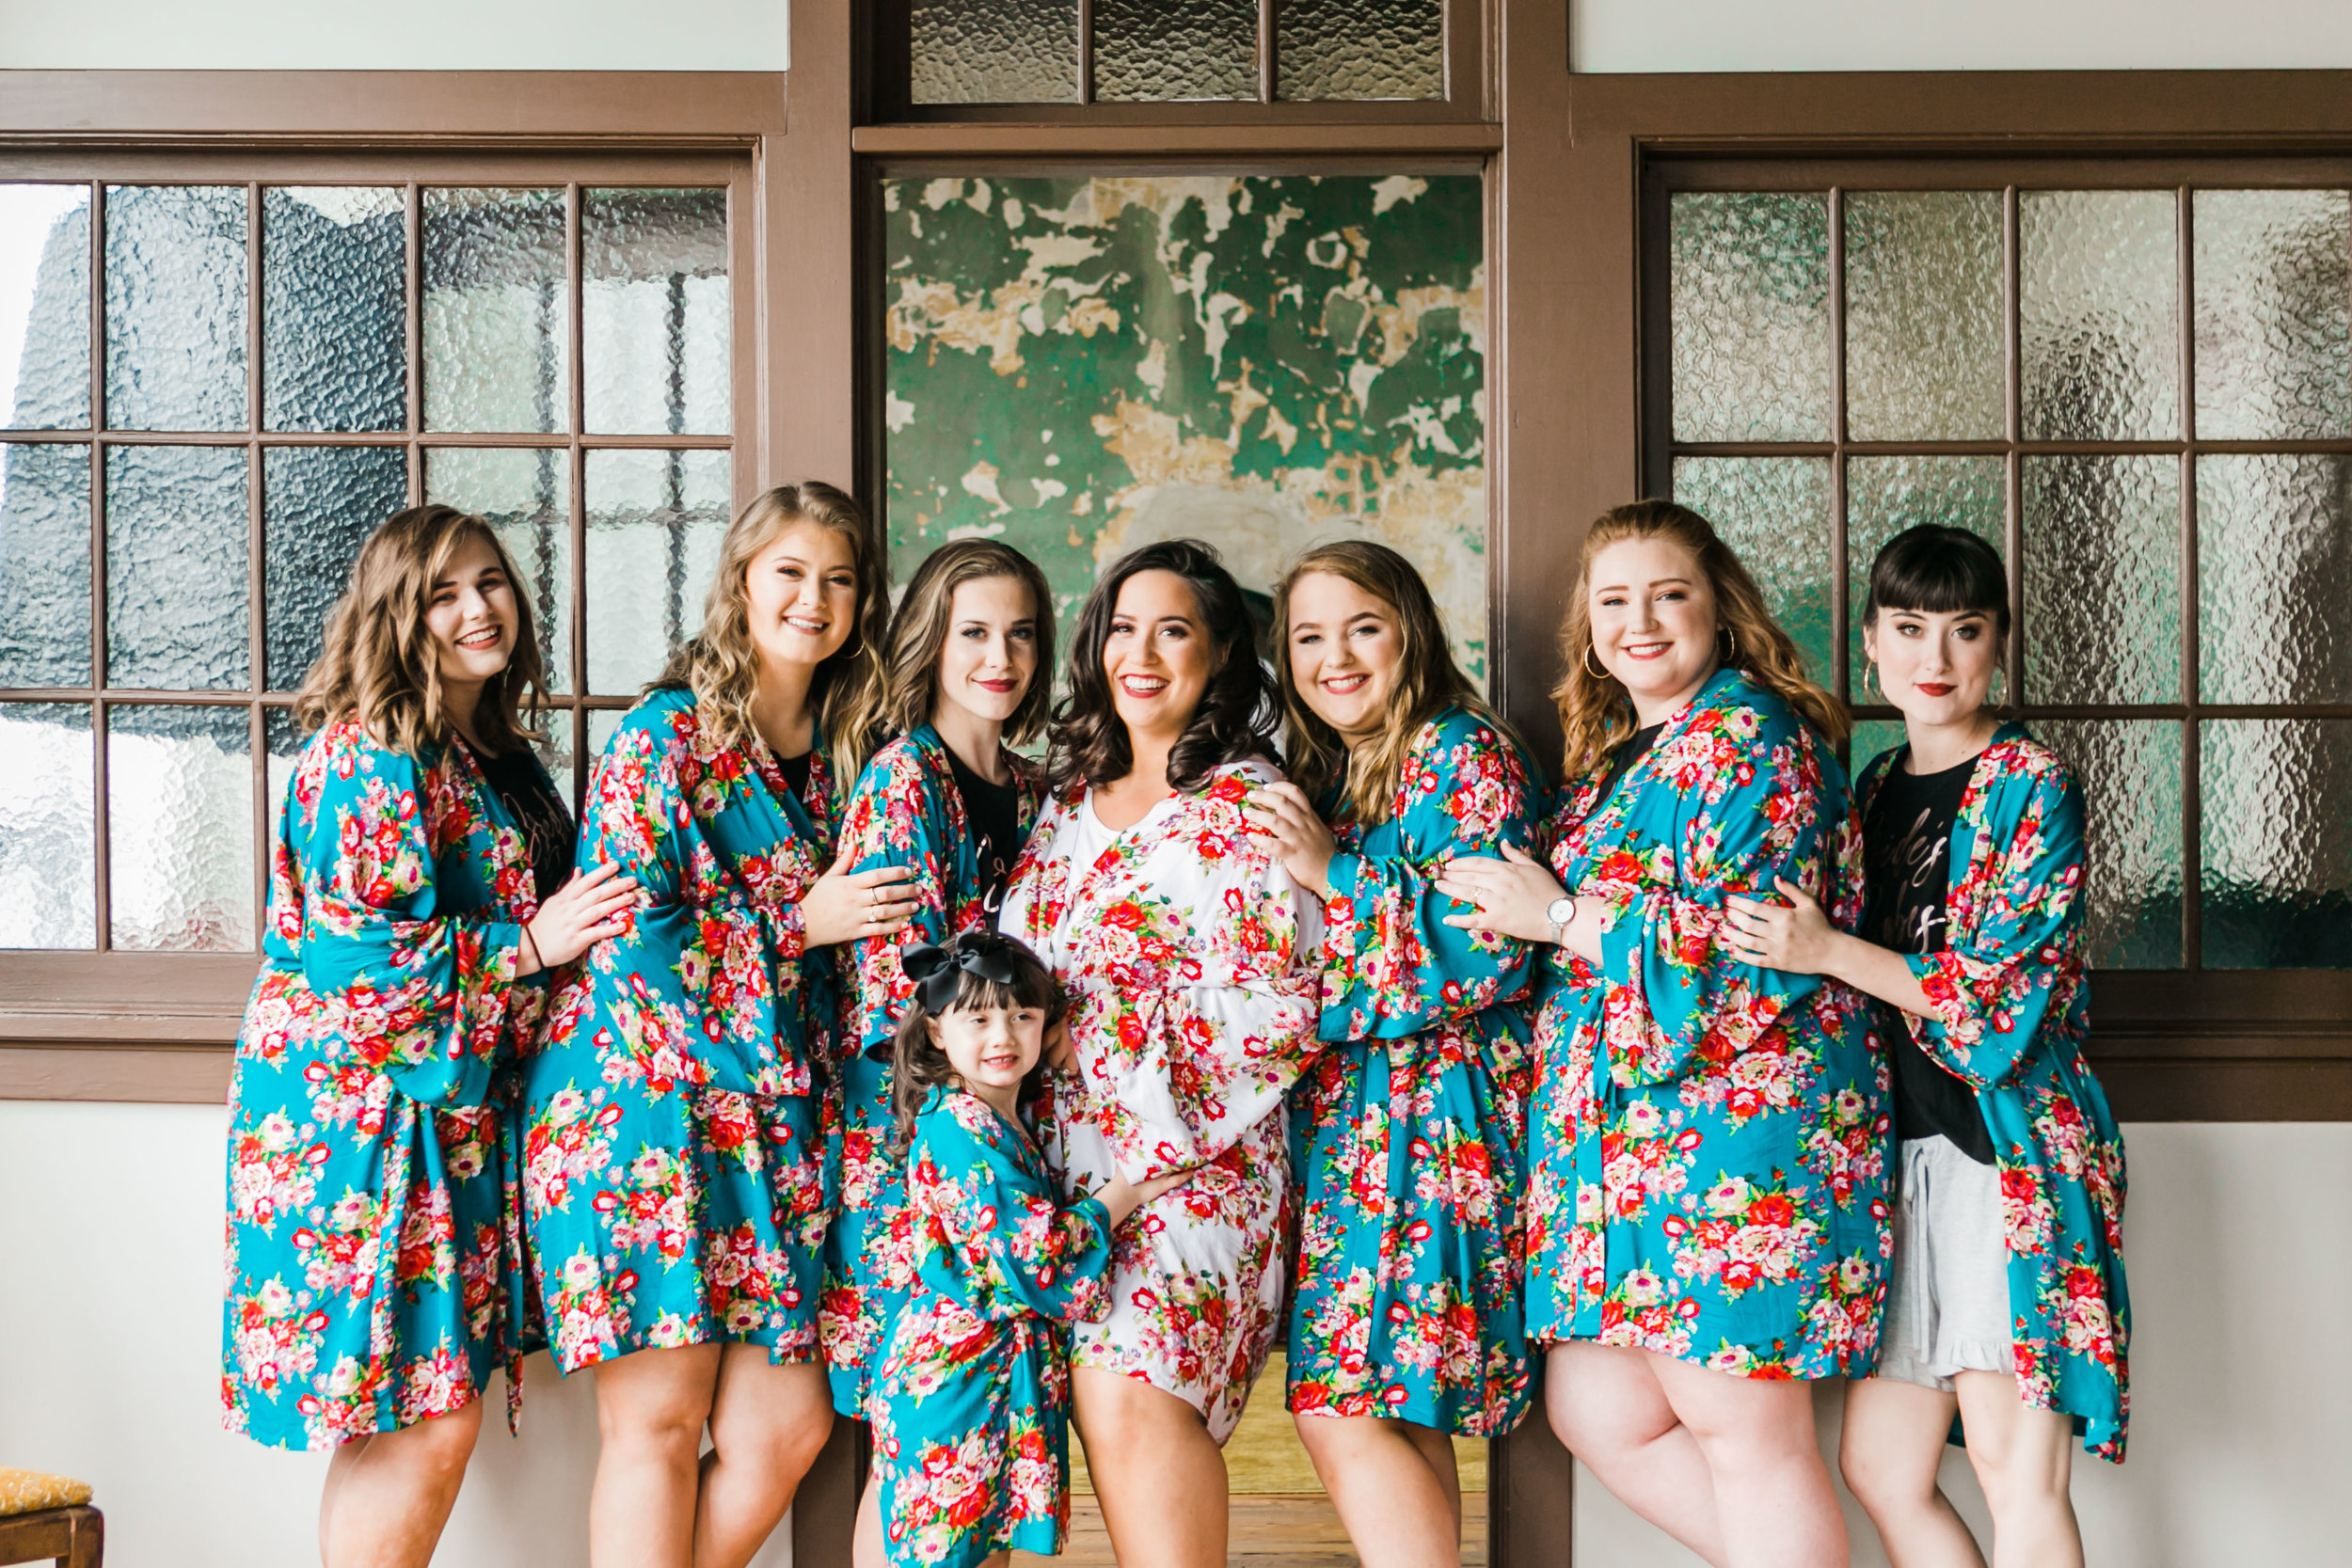 The standard knoxville bridal party